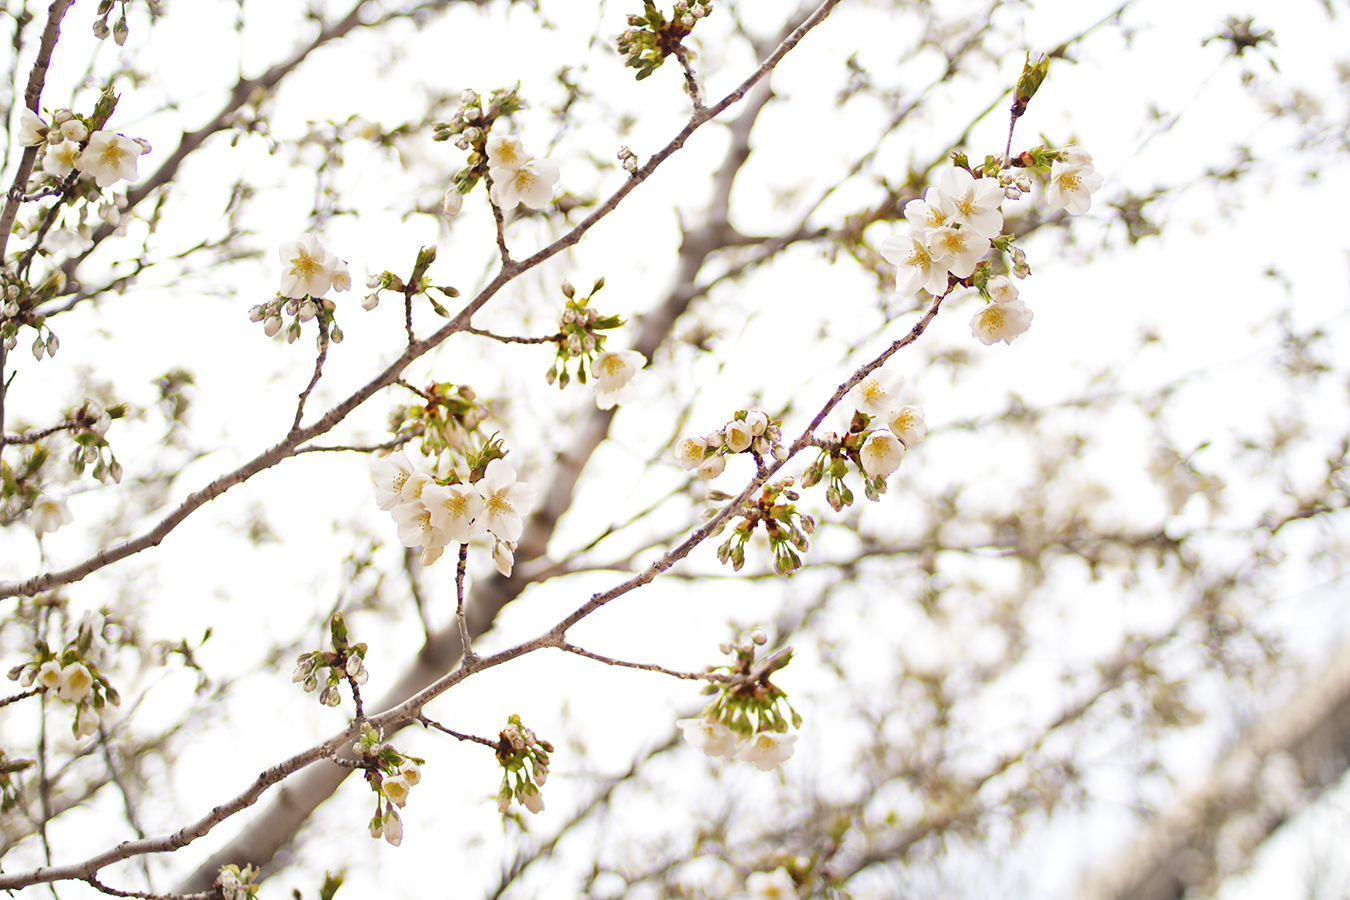 Eileen_Ko_Assignment_4_Small_White_Flowers_in_Tree_Branches